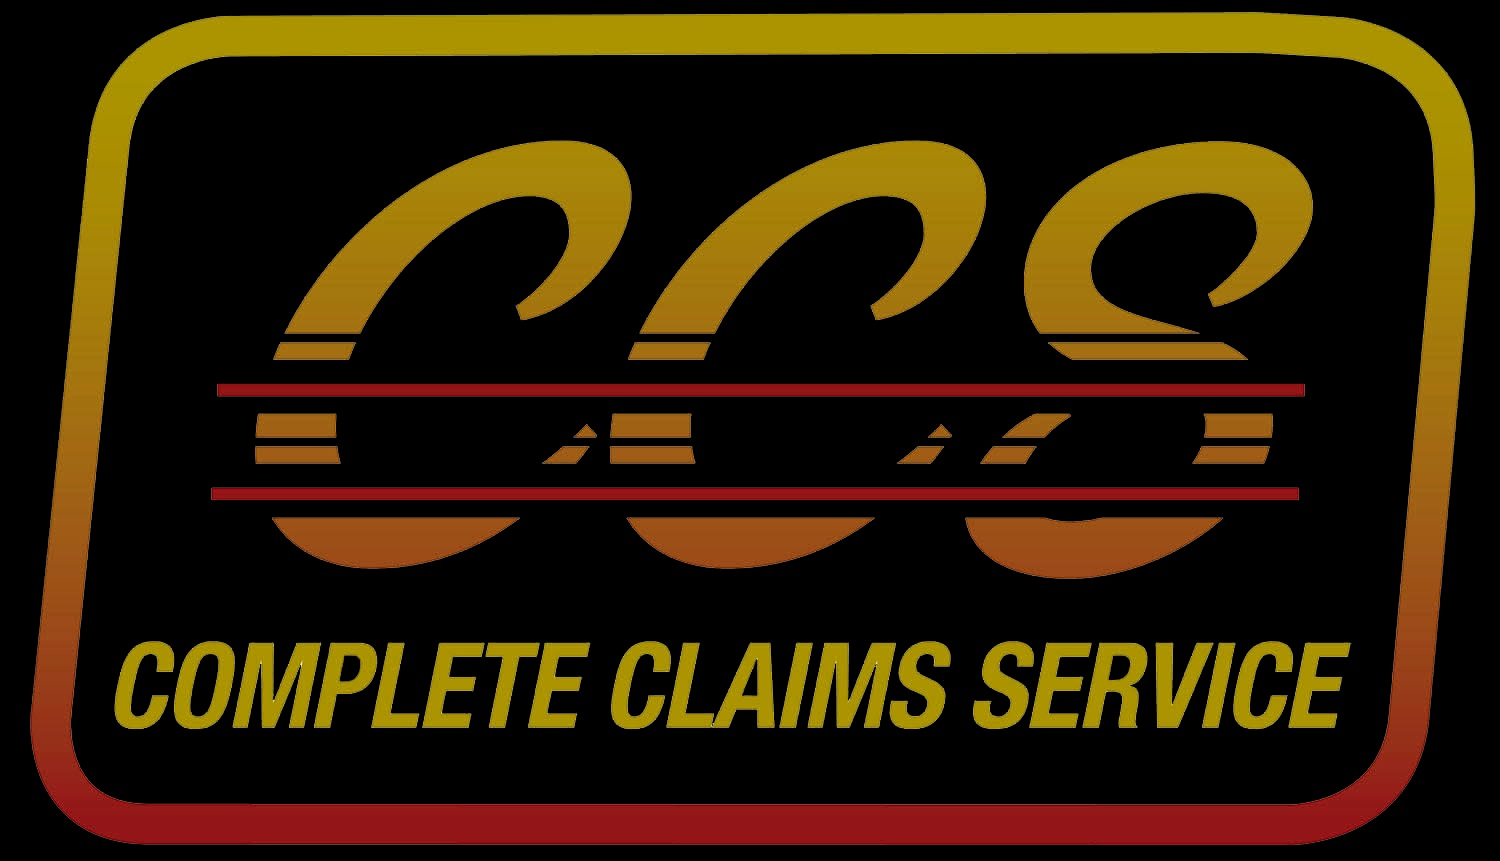 Complete Claims Service, LLC